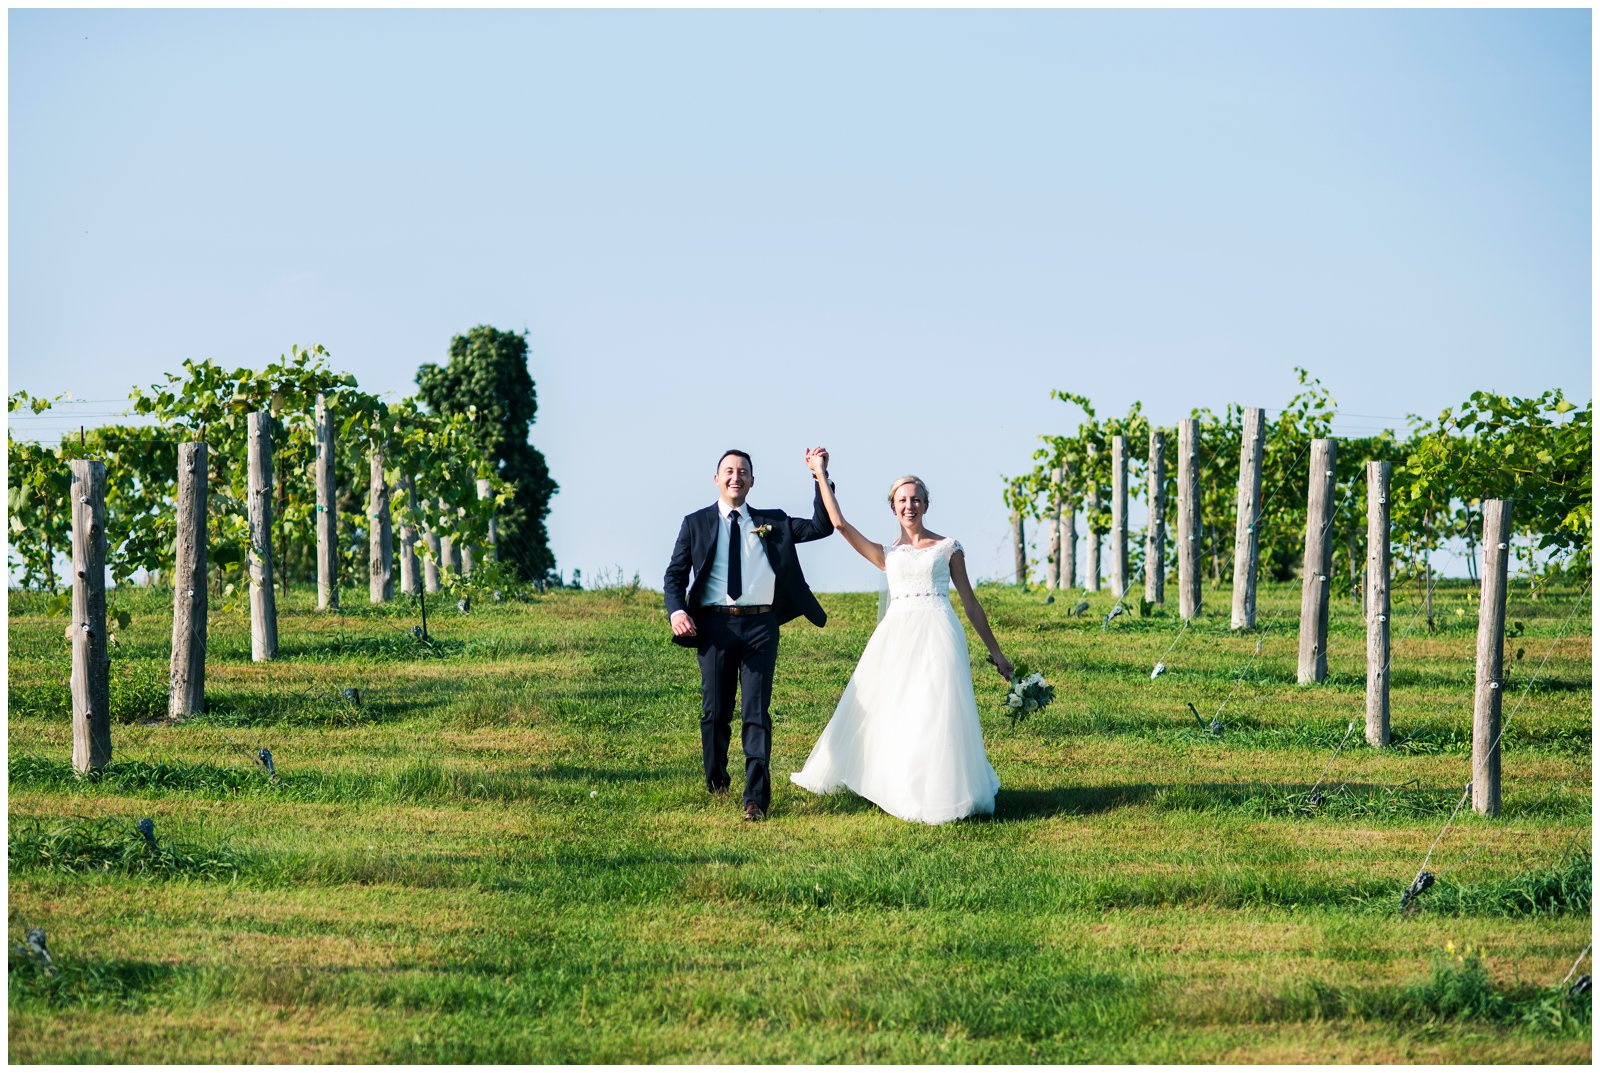 givens farm wedding_00025.JPG